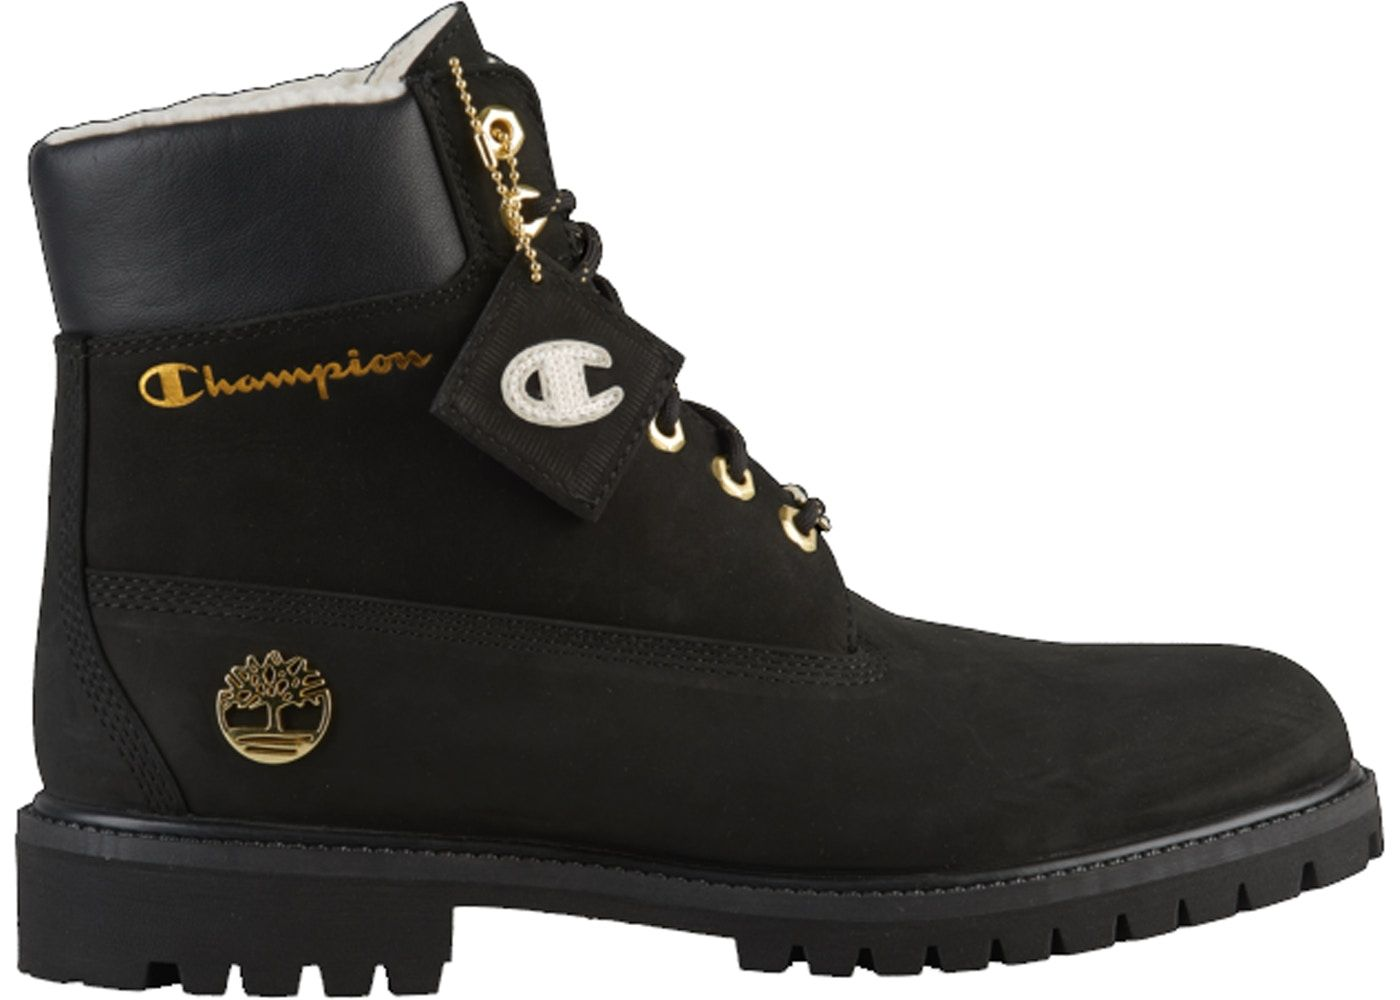 Check out the Timberland 6